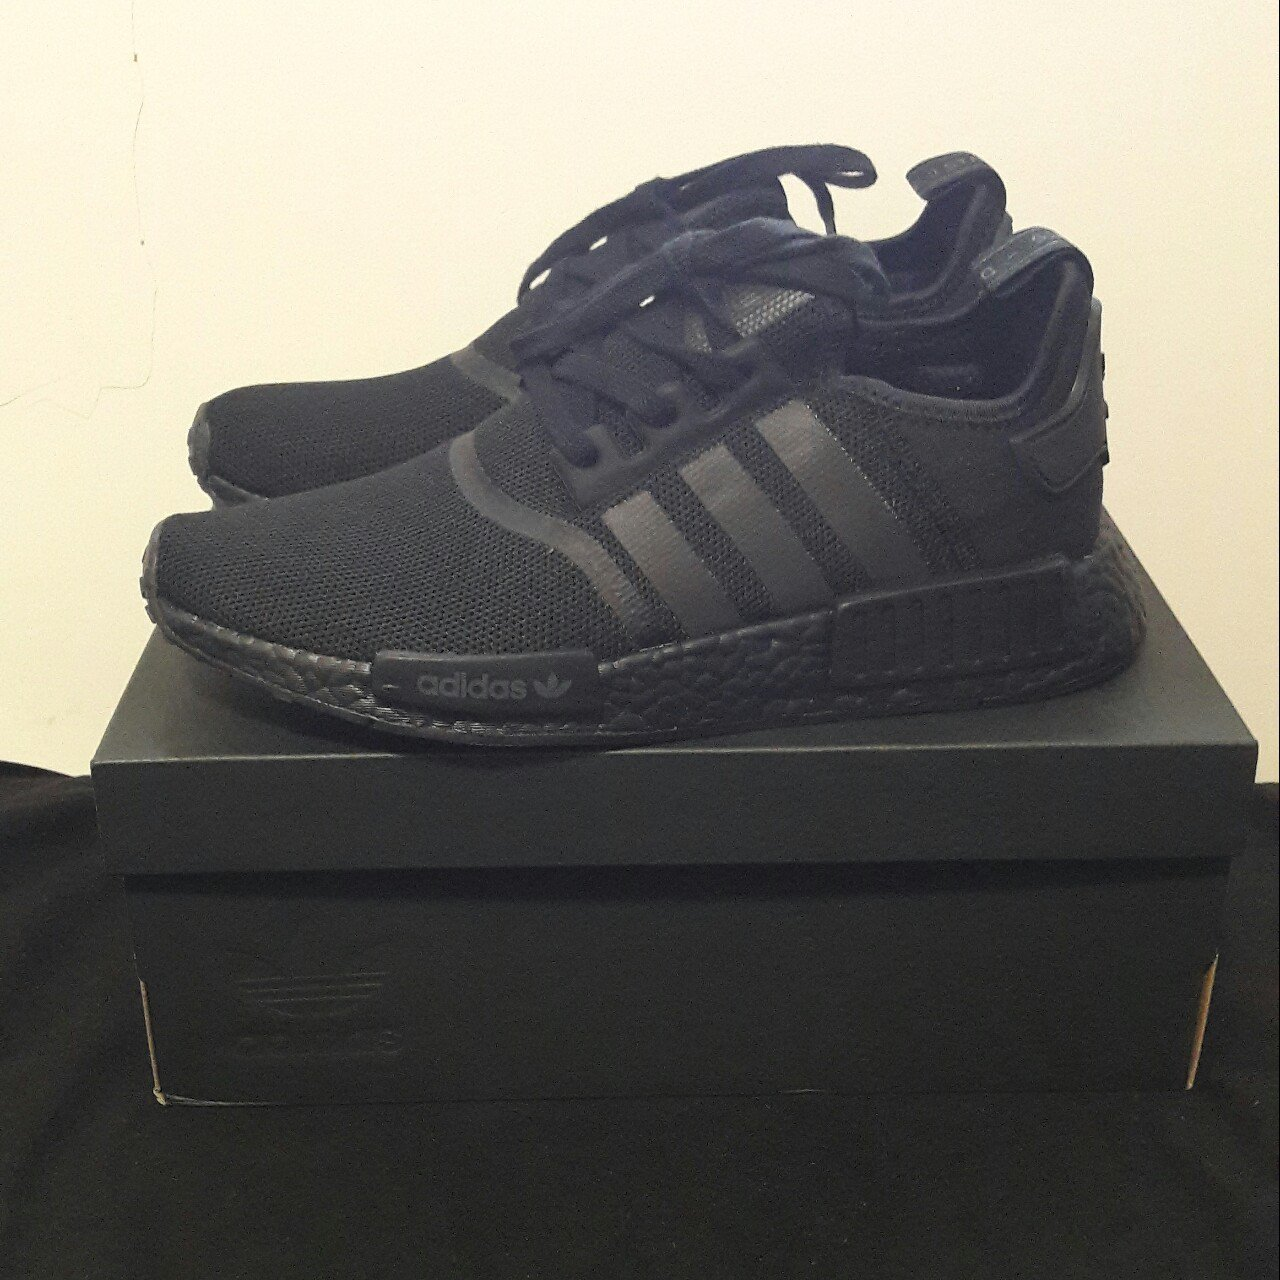 b5cef83257a Adidas R1 Runner Triple Nmd Size Depop Mono Black Reflective ffrxpqCw